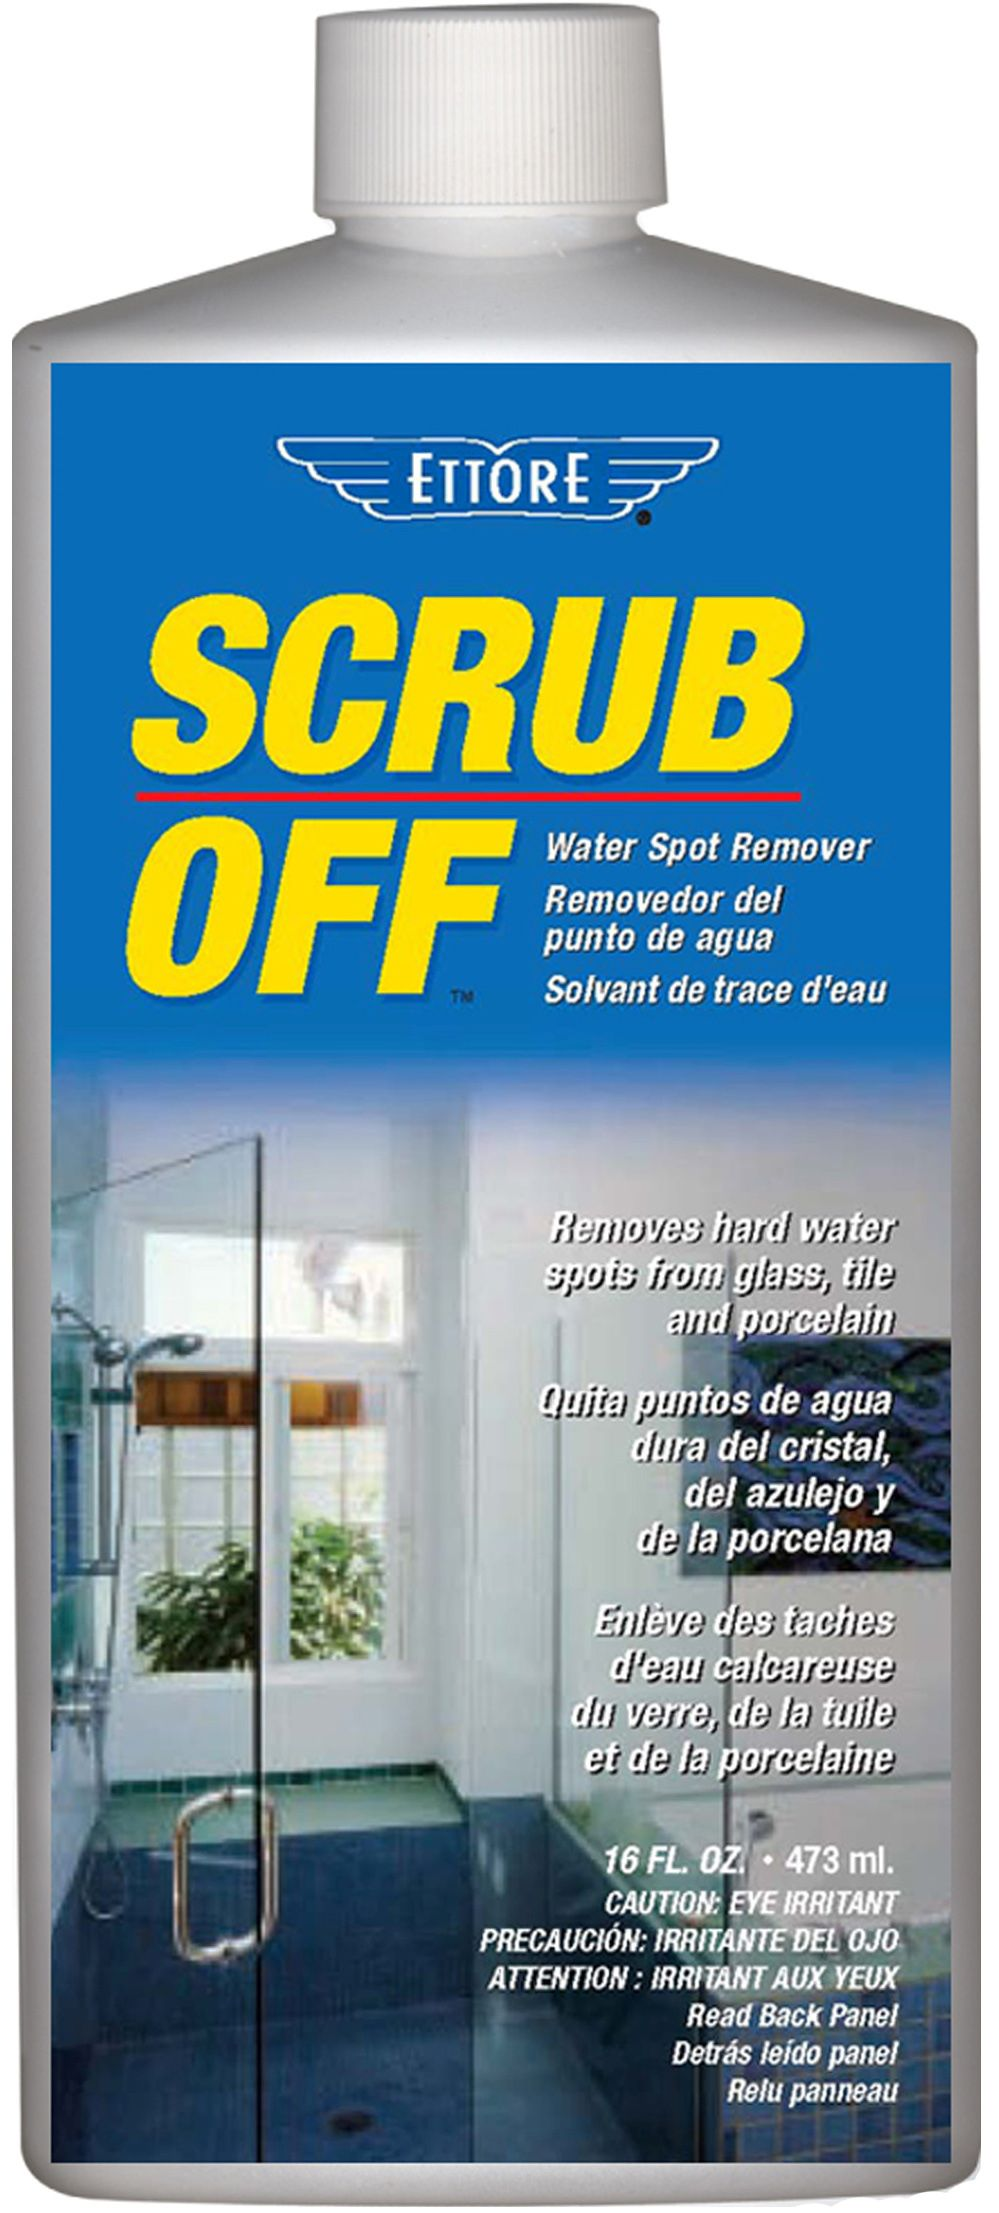 Ettore Scrub Off spot remover removes stubborn hard water stains ...